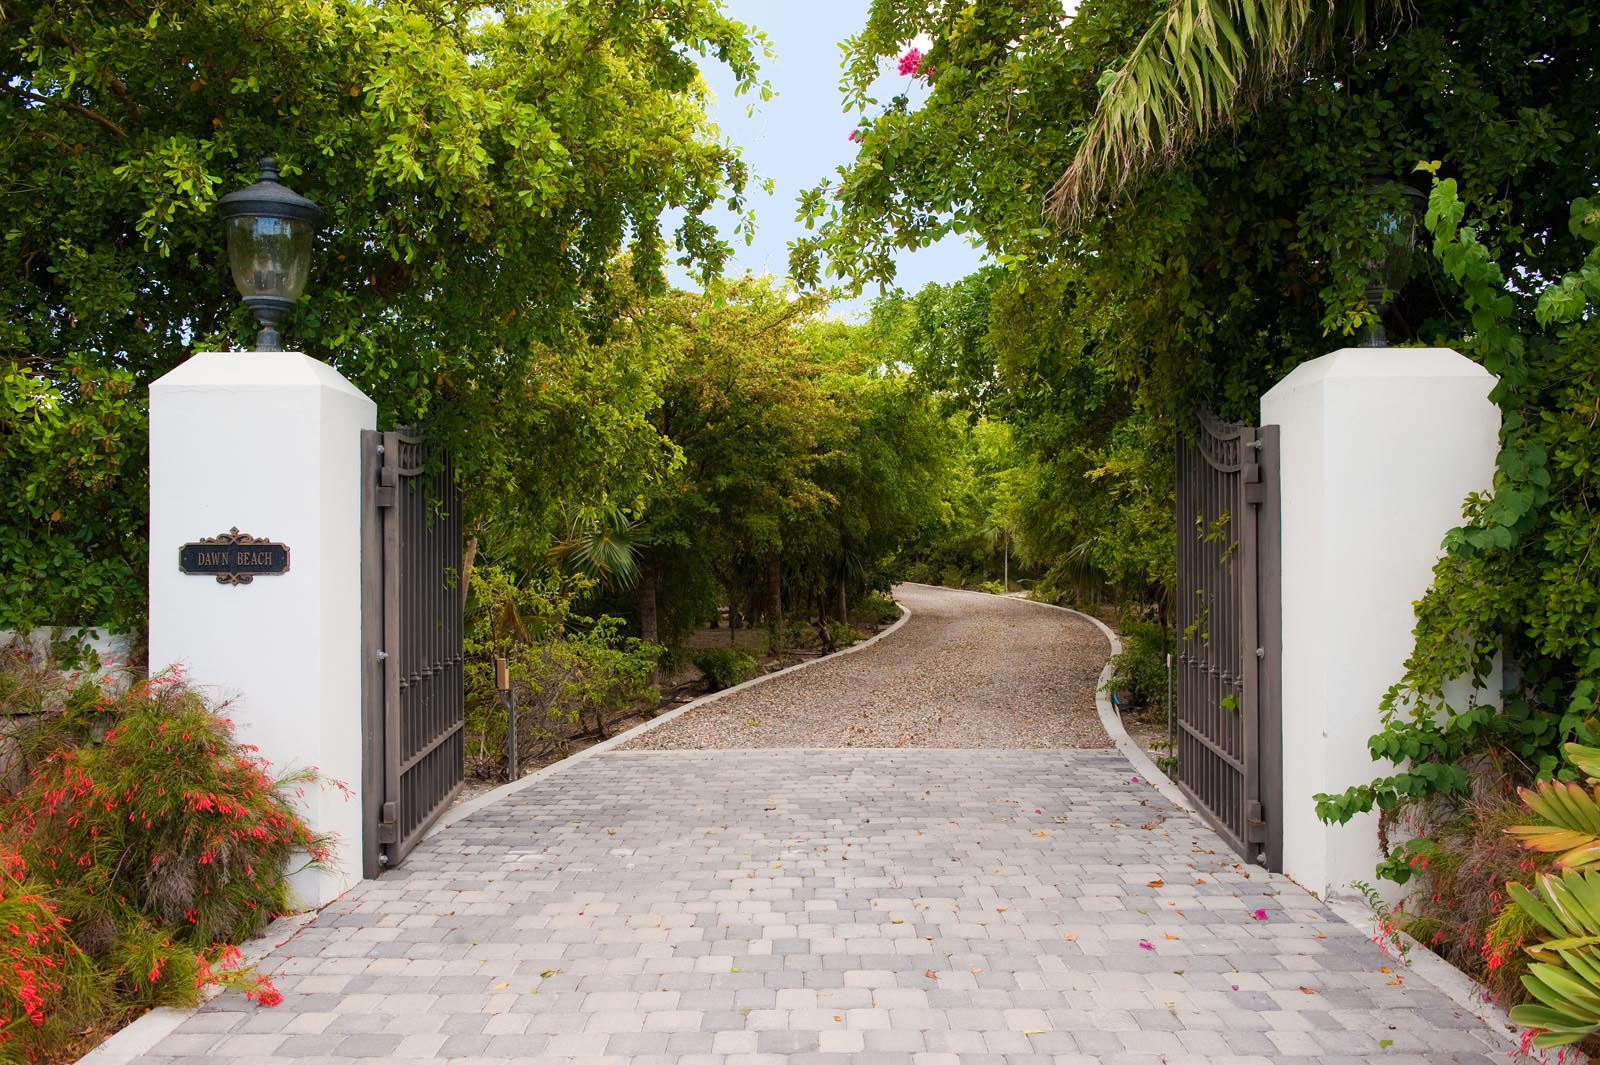 Enter into a very private enclave - Dawn Beach Villa, Grace Bay Beach, Providenciales (Provo), Turks and Caicos Islands.